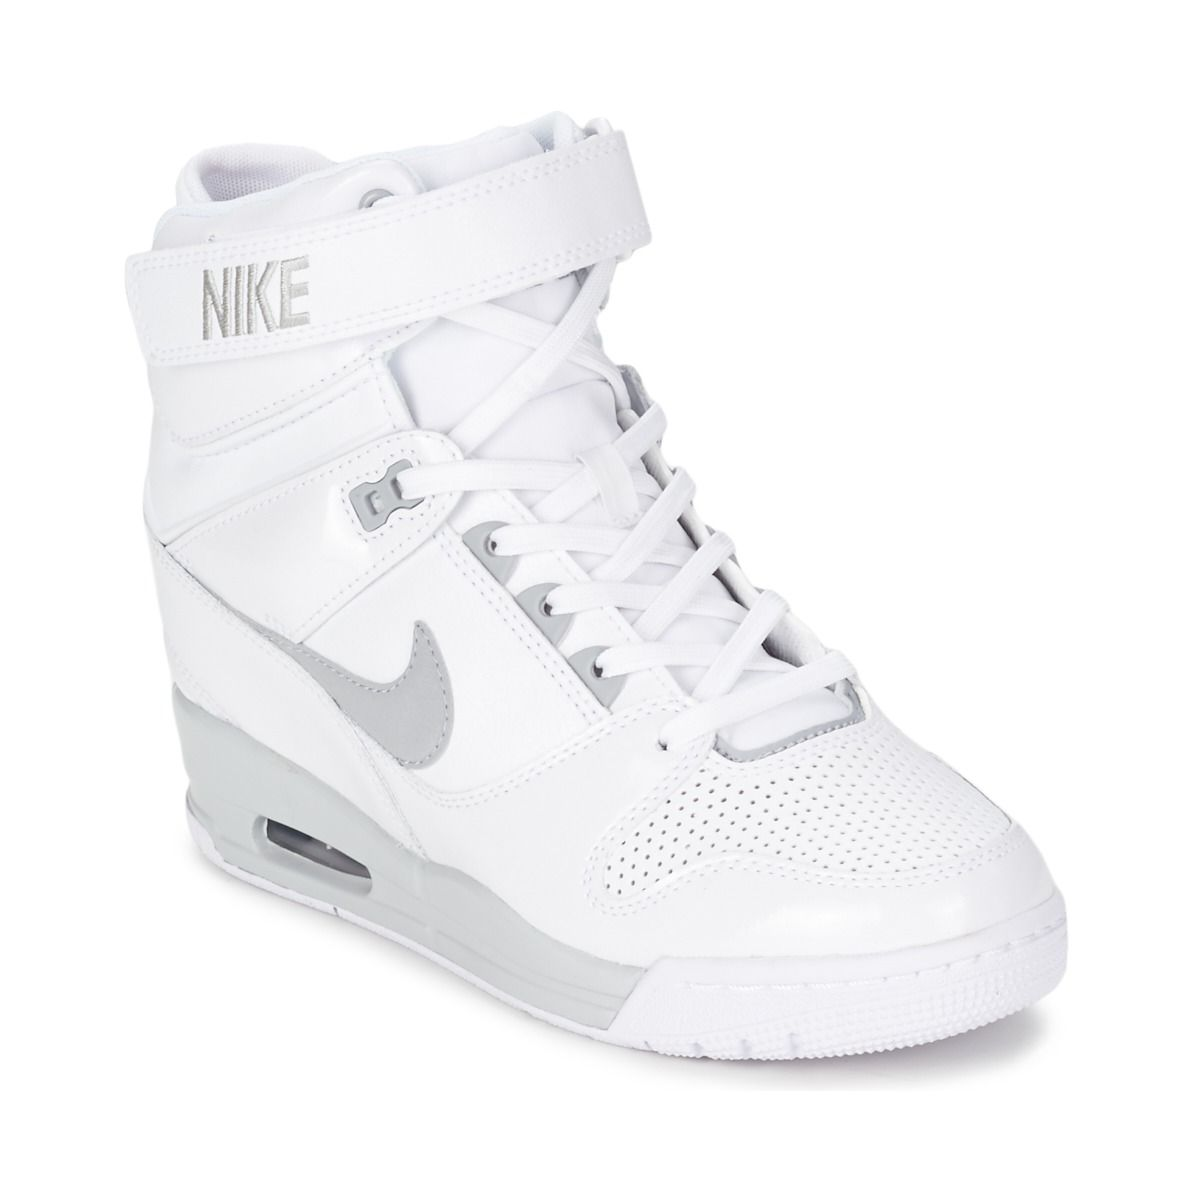 Baskets montantes Nike AIR REVOLUTION SKY HI Blanc | Basket